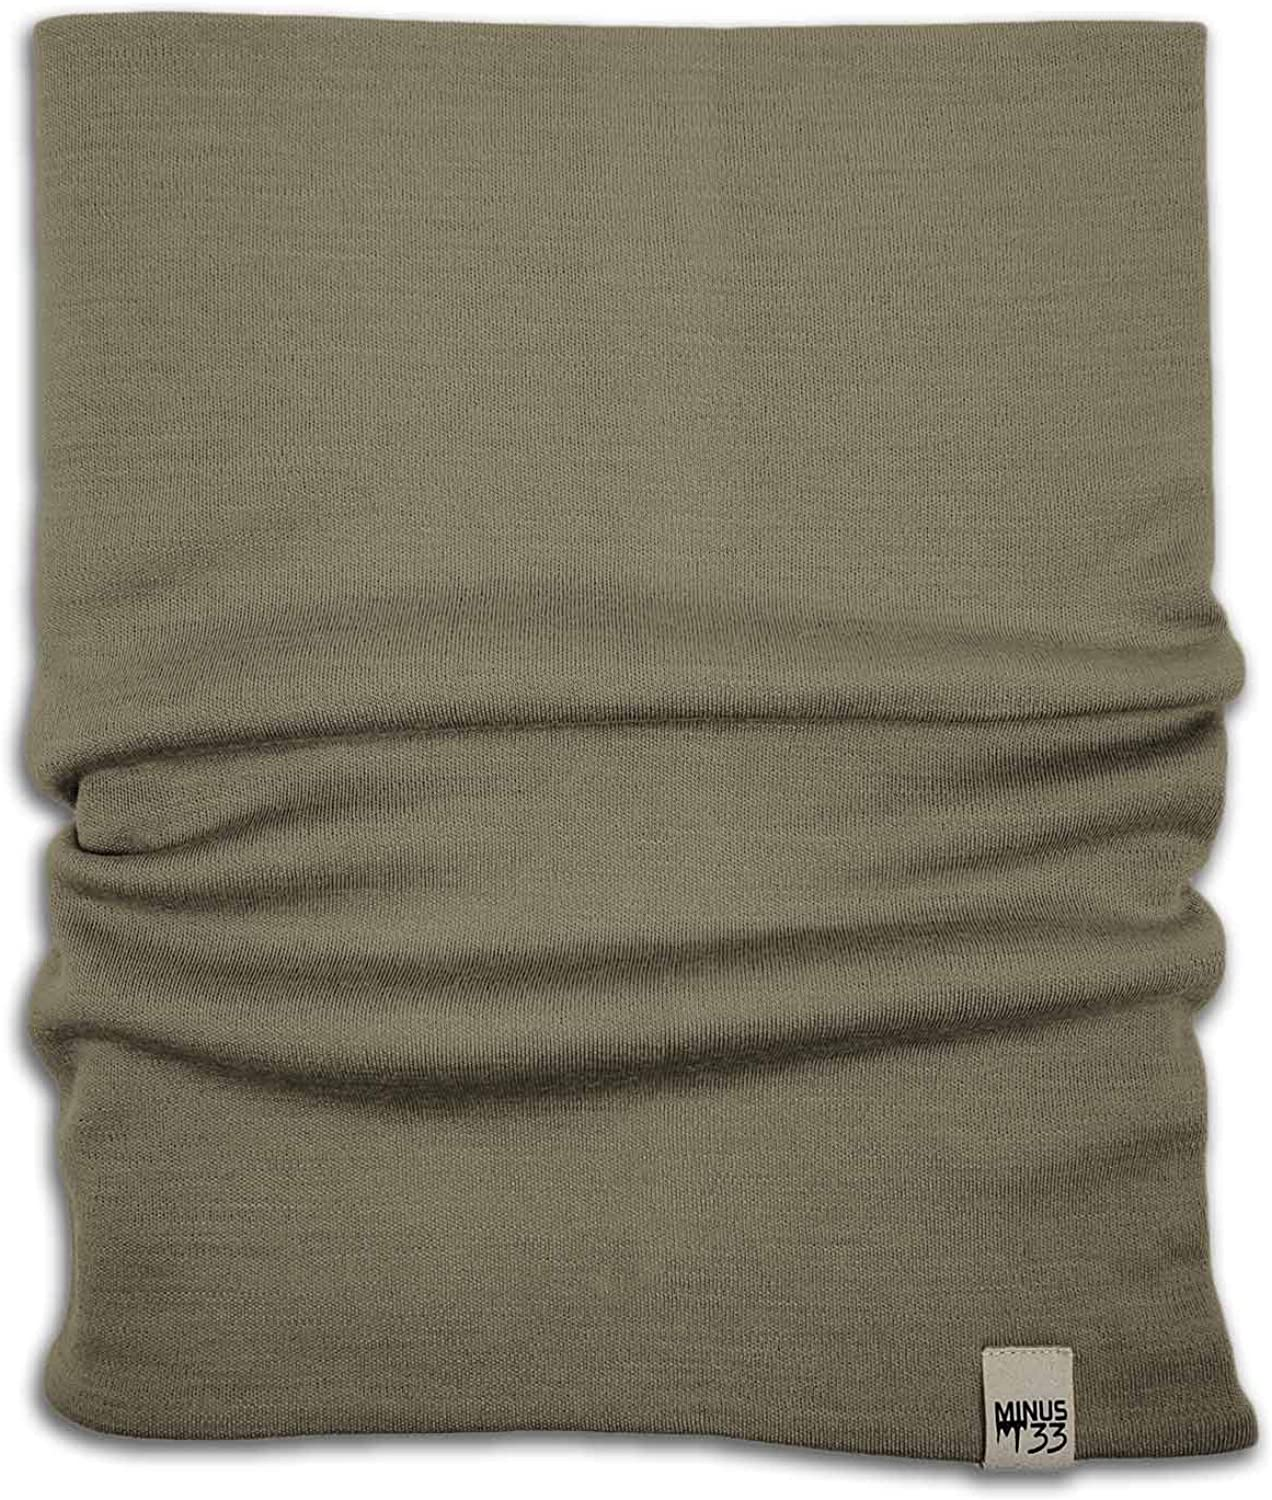 Minus33 Special Campaign Merino Wool 730 Midweight Neck Gaiter One Size online shop Tan 499